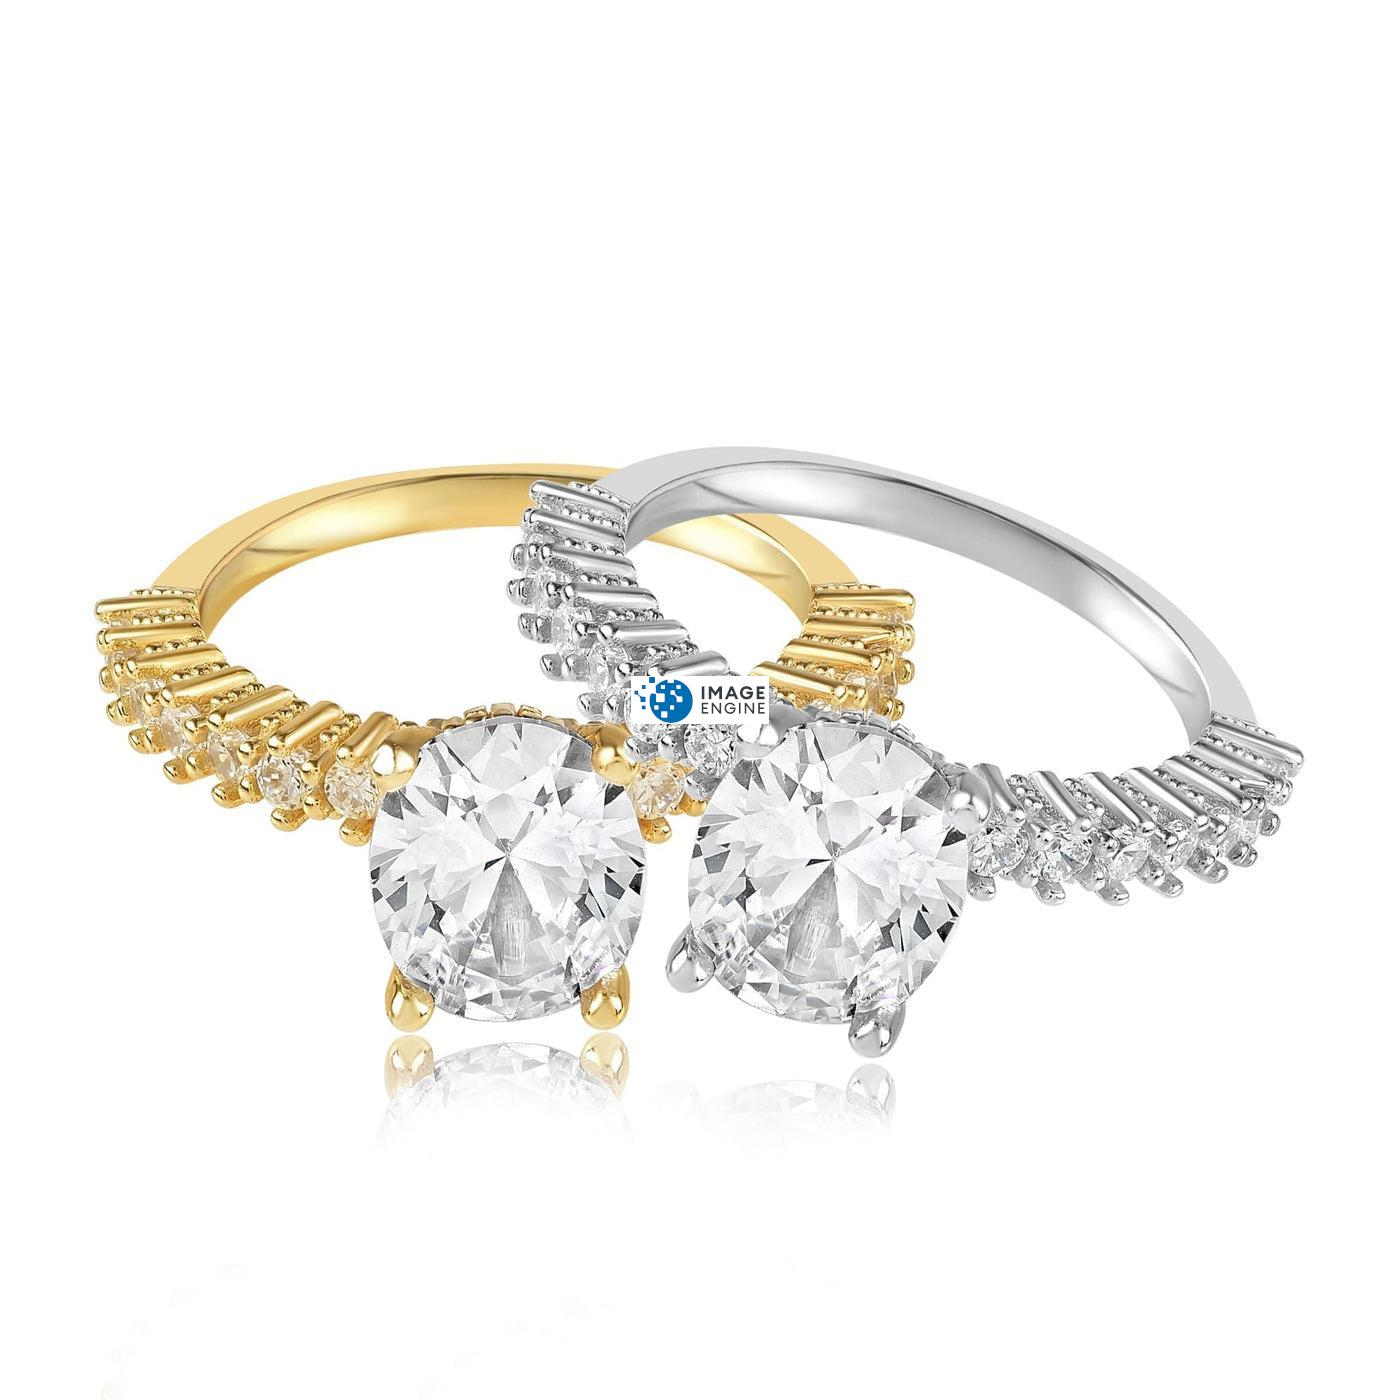 Cara Zirconia Ring - Front View Side by Side - 18K Yellow Gold Vermeil and 925 Sterling Silver